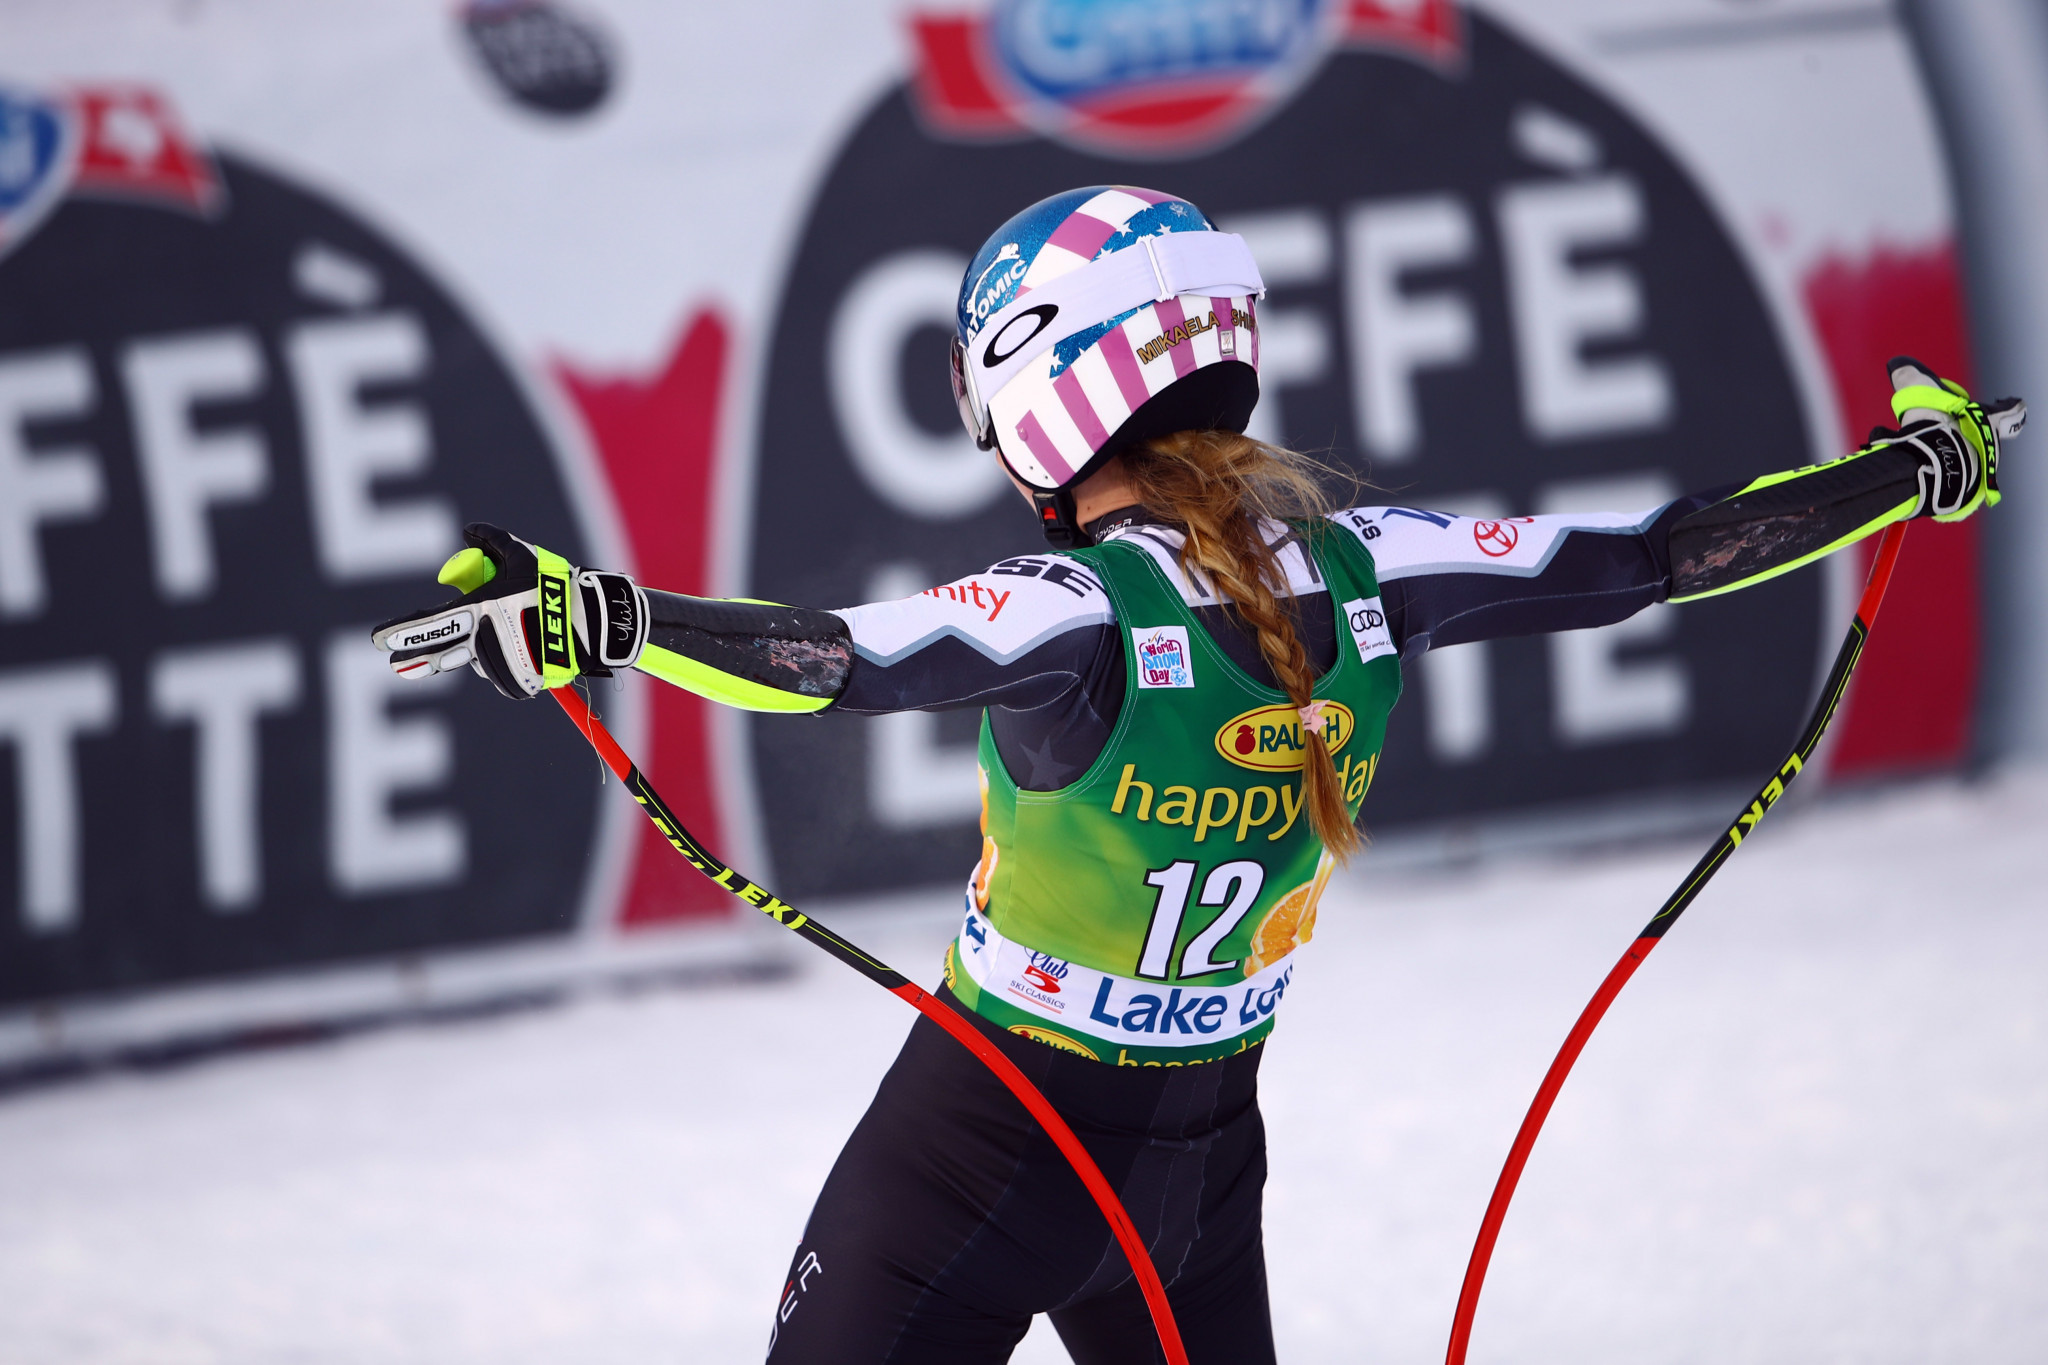 Mikaela Shiffrin became only the seventh woman to earn a victory in each of the major five World Cup disciplines ©Getty Images